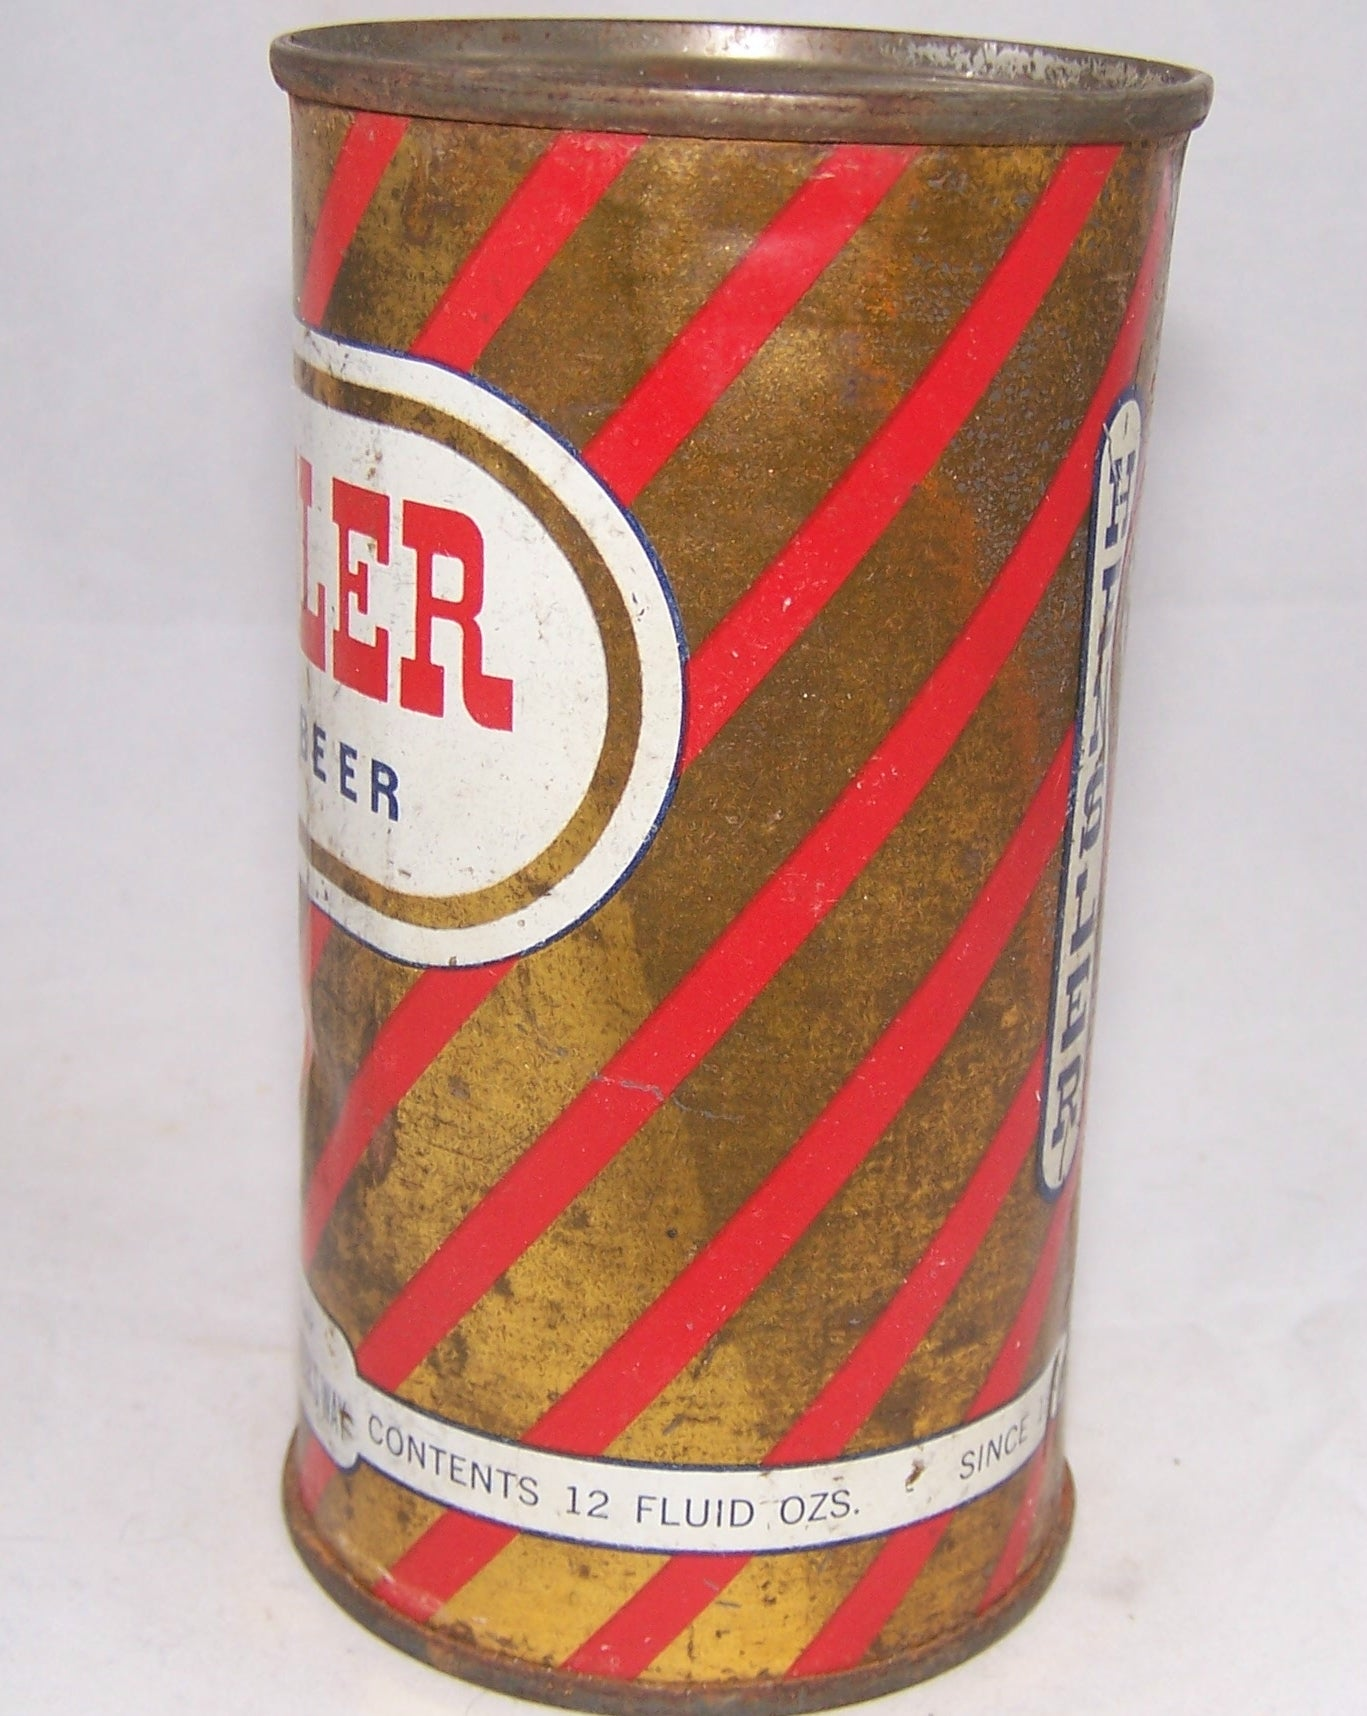 Hensler Light Beer. (Barber Pole) USBC 81-32, Grade 1-/2+